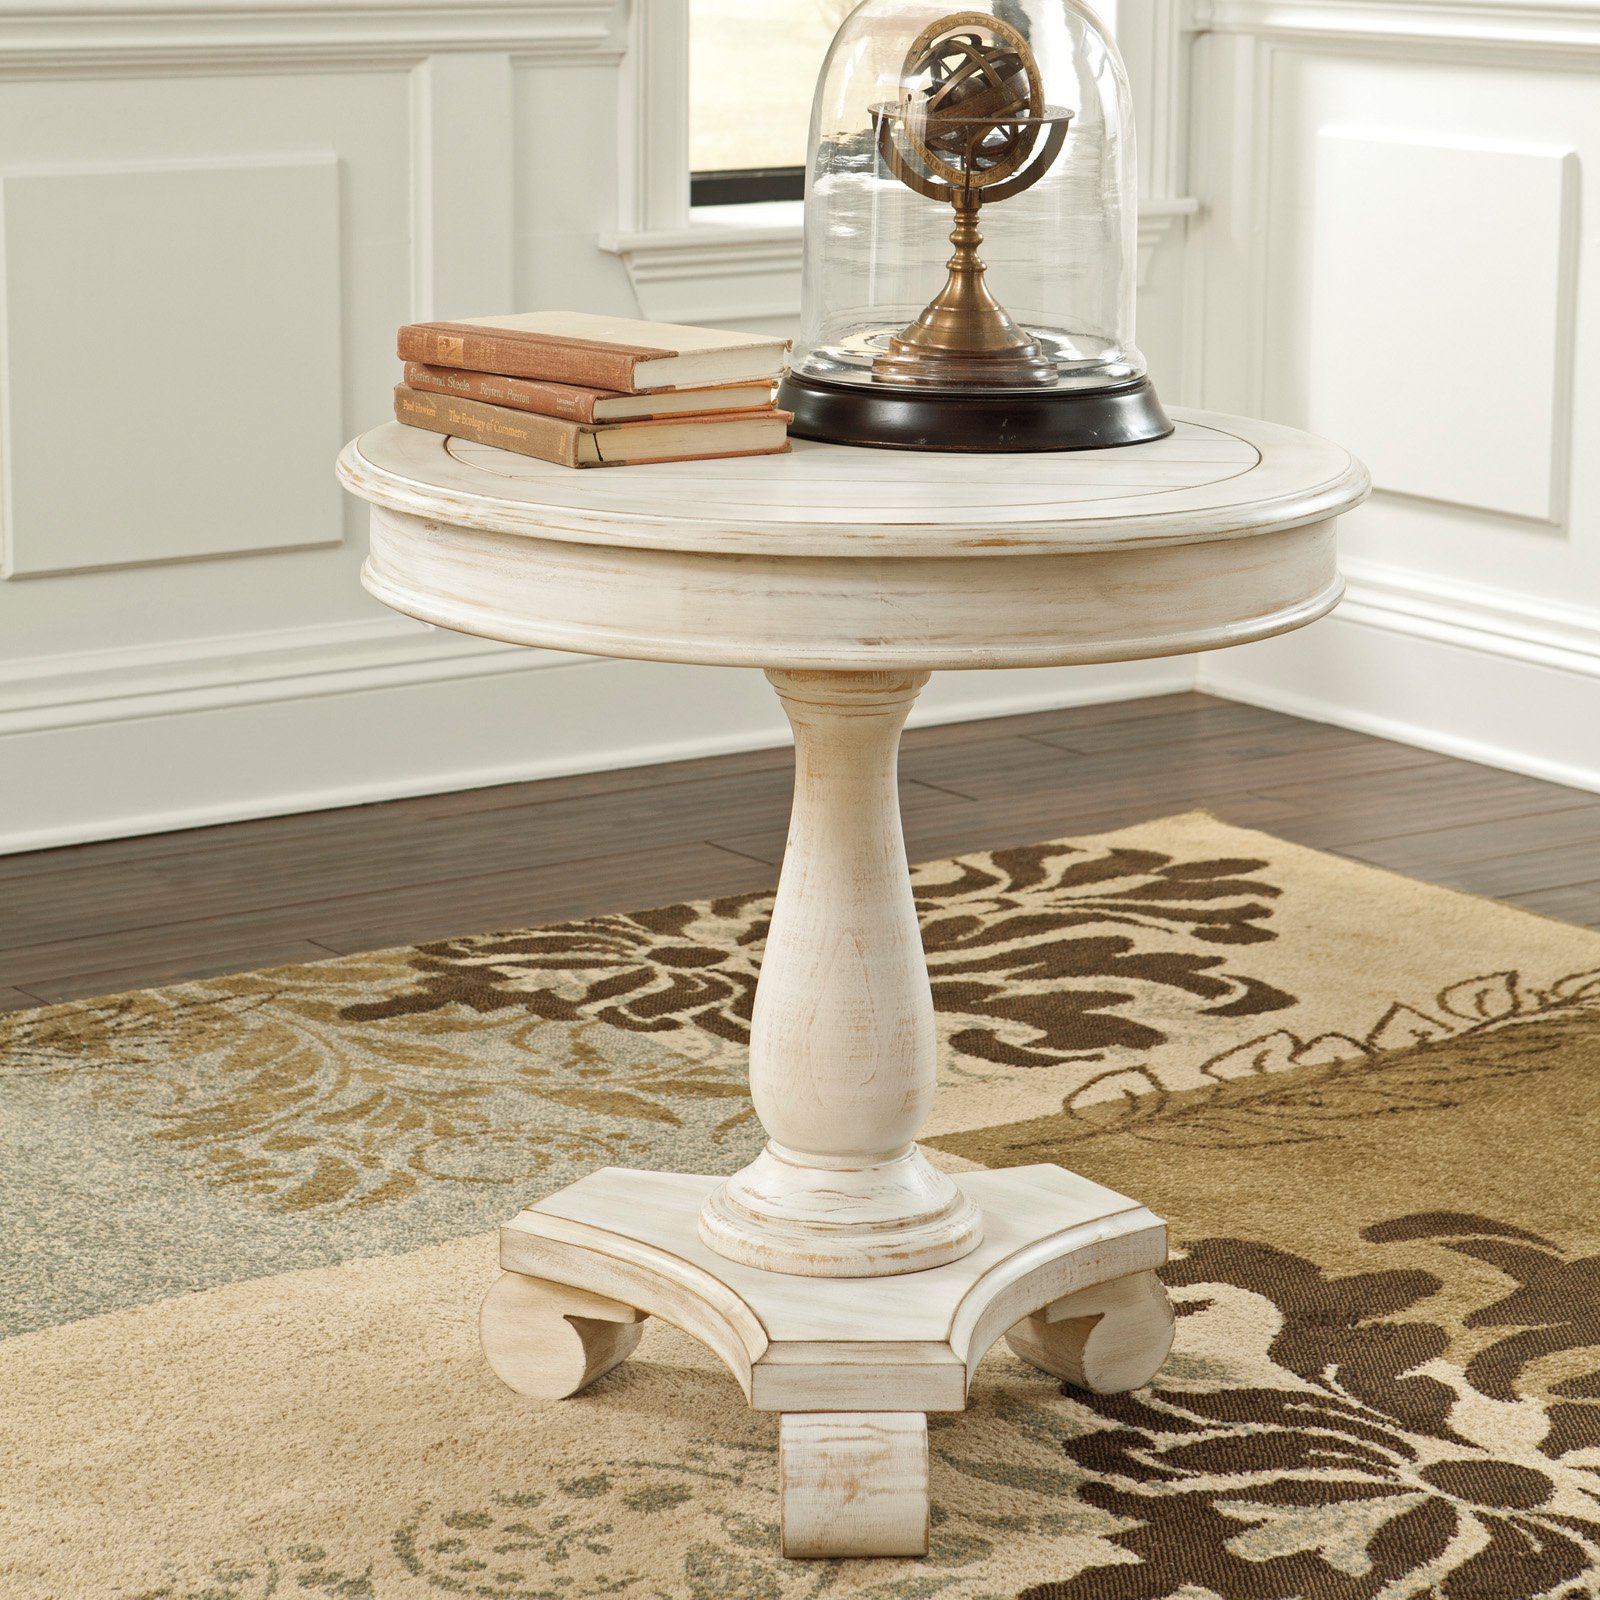 signature design ashley cottage accents white round accent table vintage battery powered led lamp nate berkus sheets unique small end tables thin entryway spring haven collection